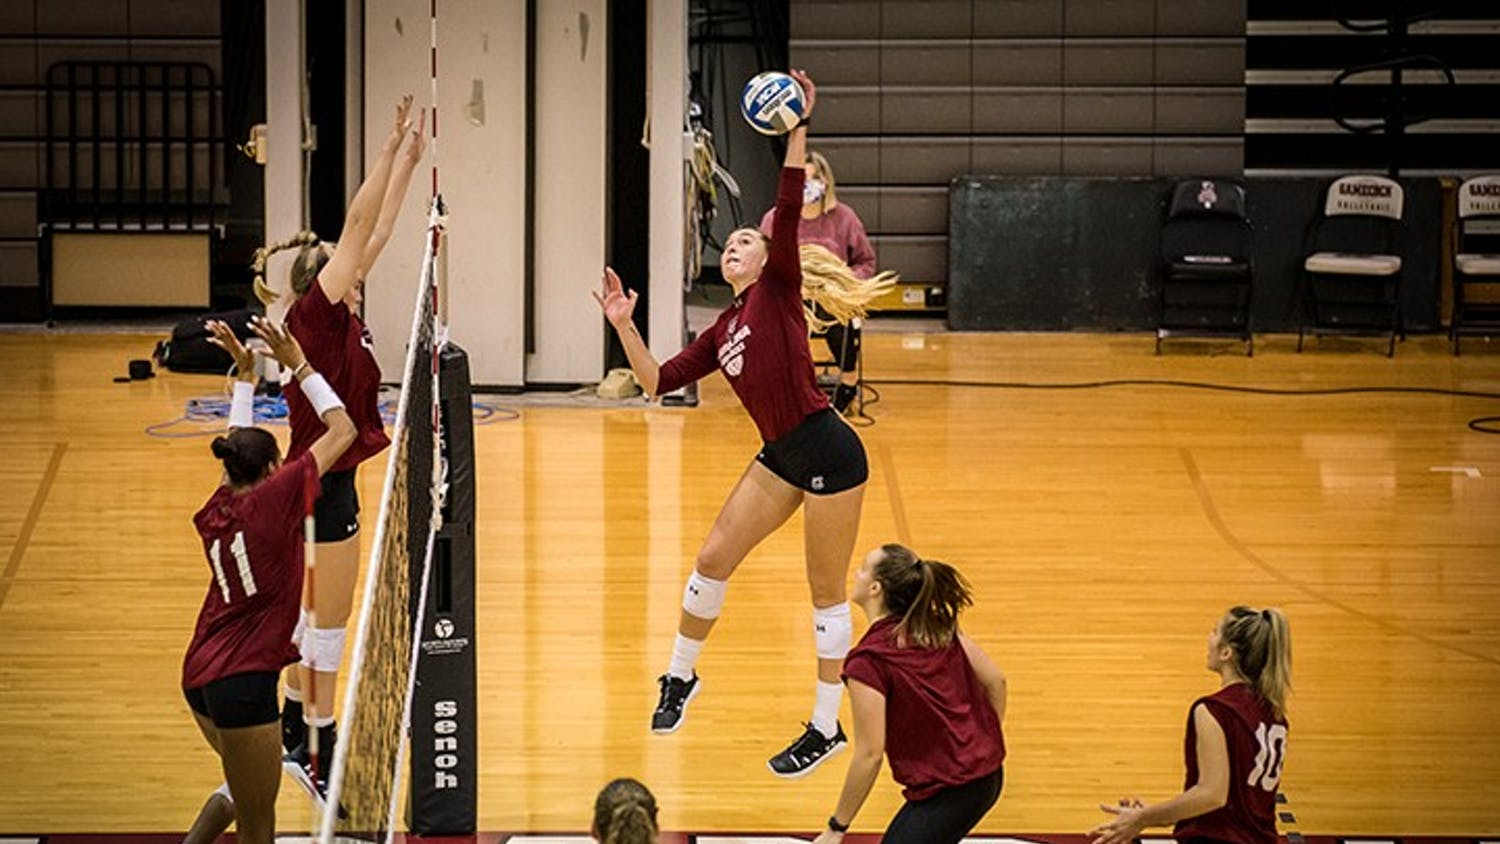 Sophomore Holly Eastridge spikes the ball during a practice scrimmage. South Carolina opens SEC play at Alabama on Jan. 29.